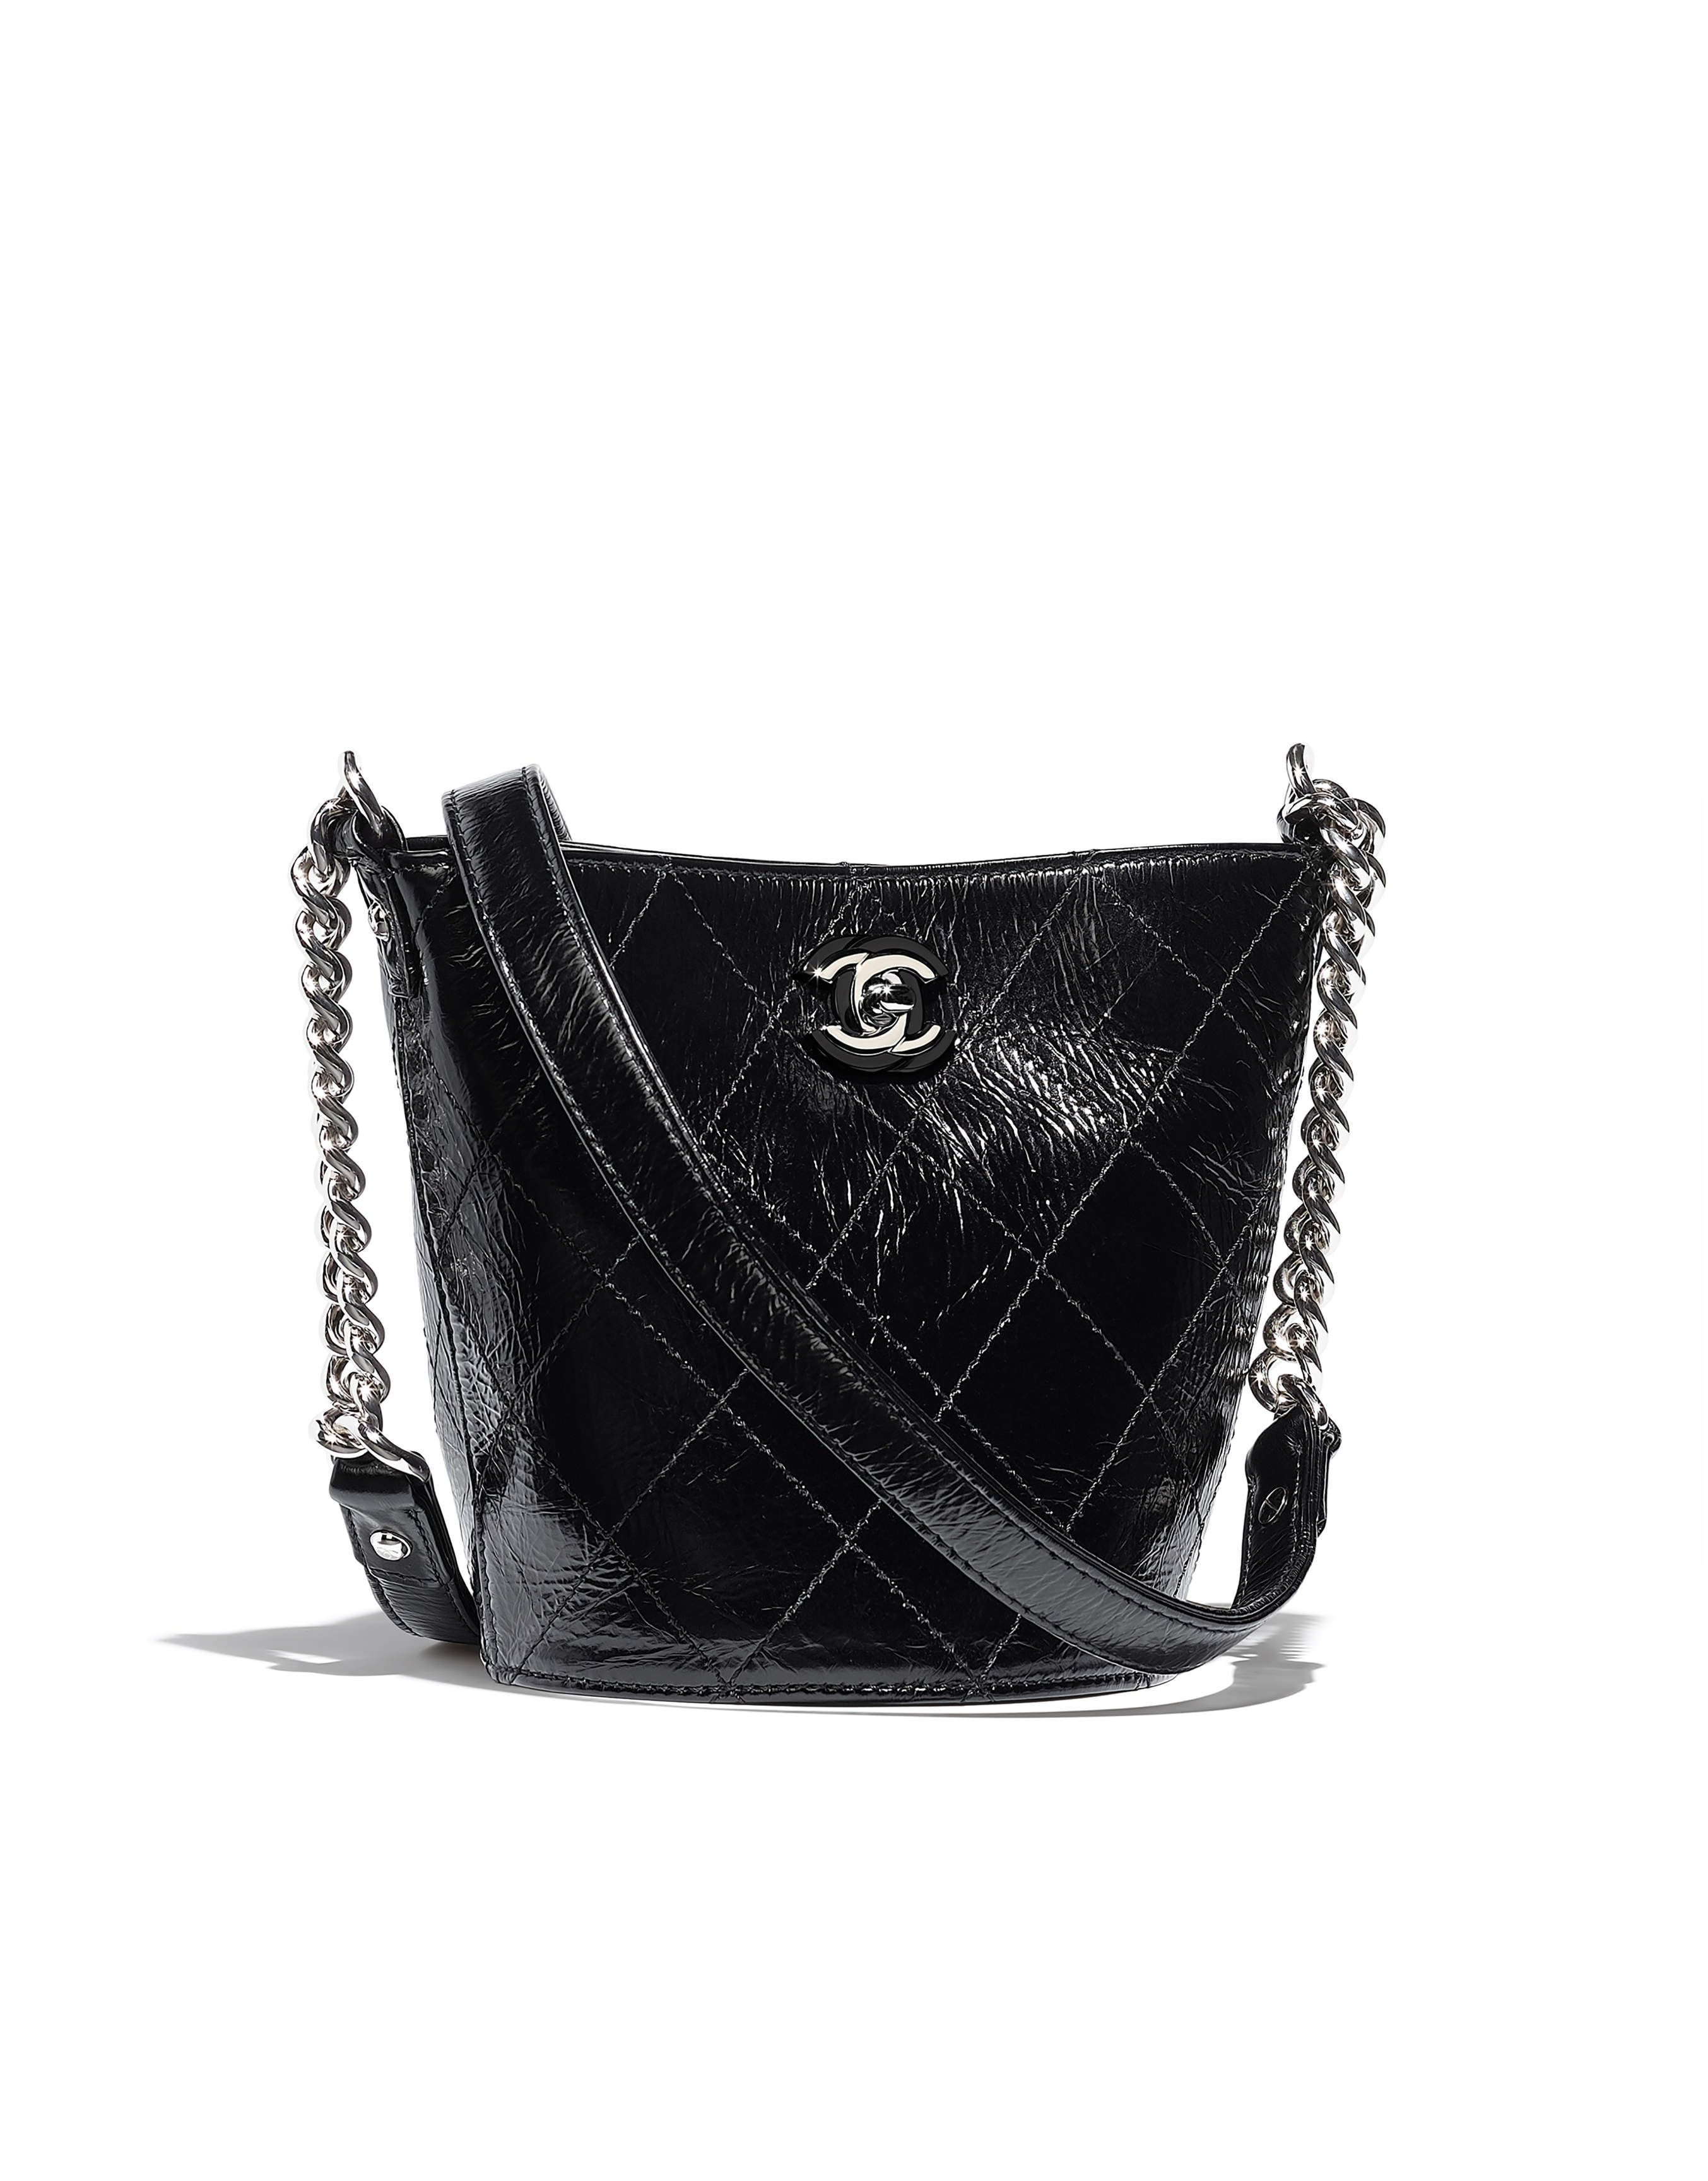 b8f24445b901 The latest Handbags collections on the CHANEL official website ...